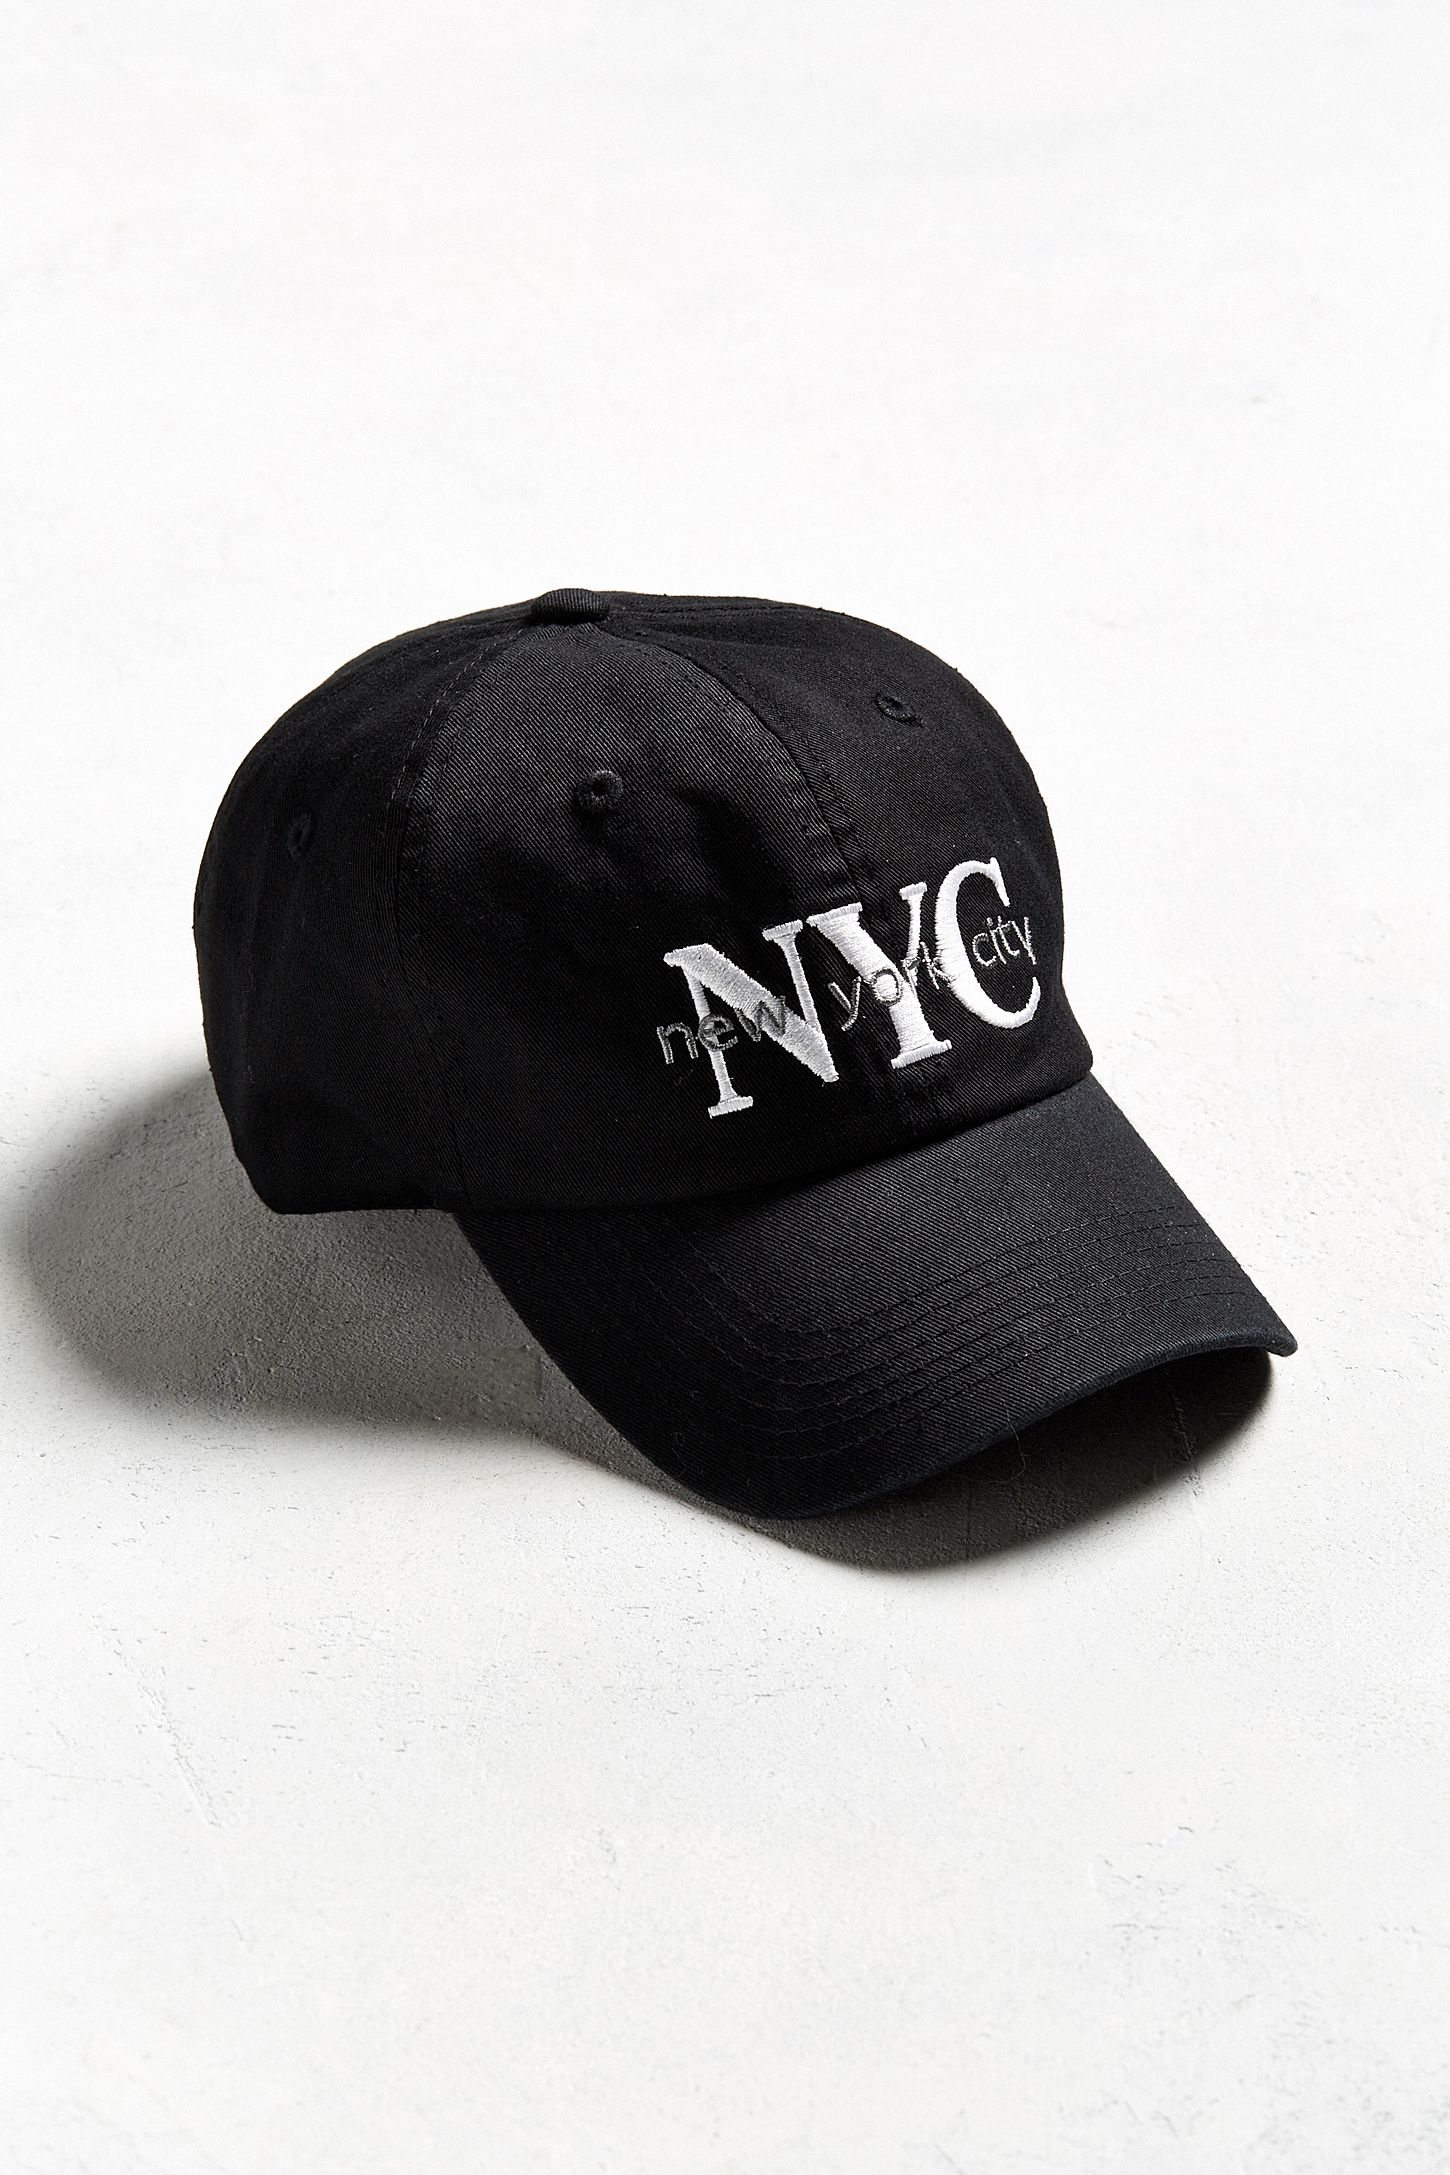 ce917e1c672 NYC Baseball Hat